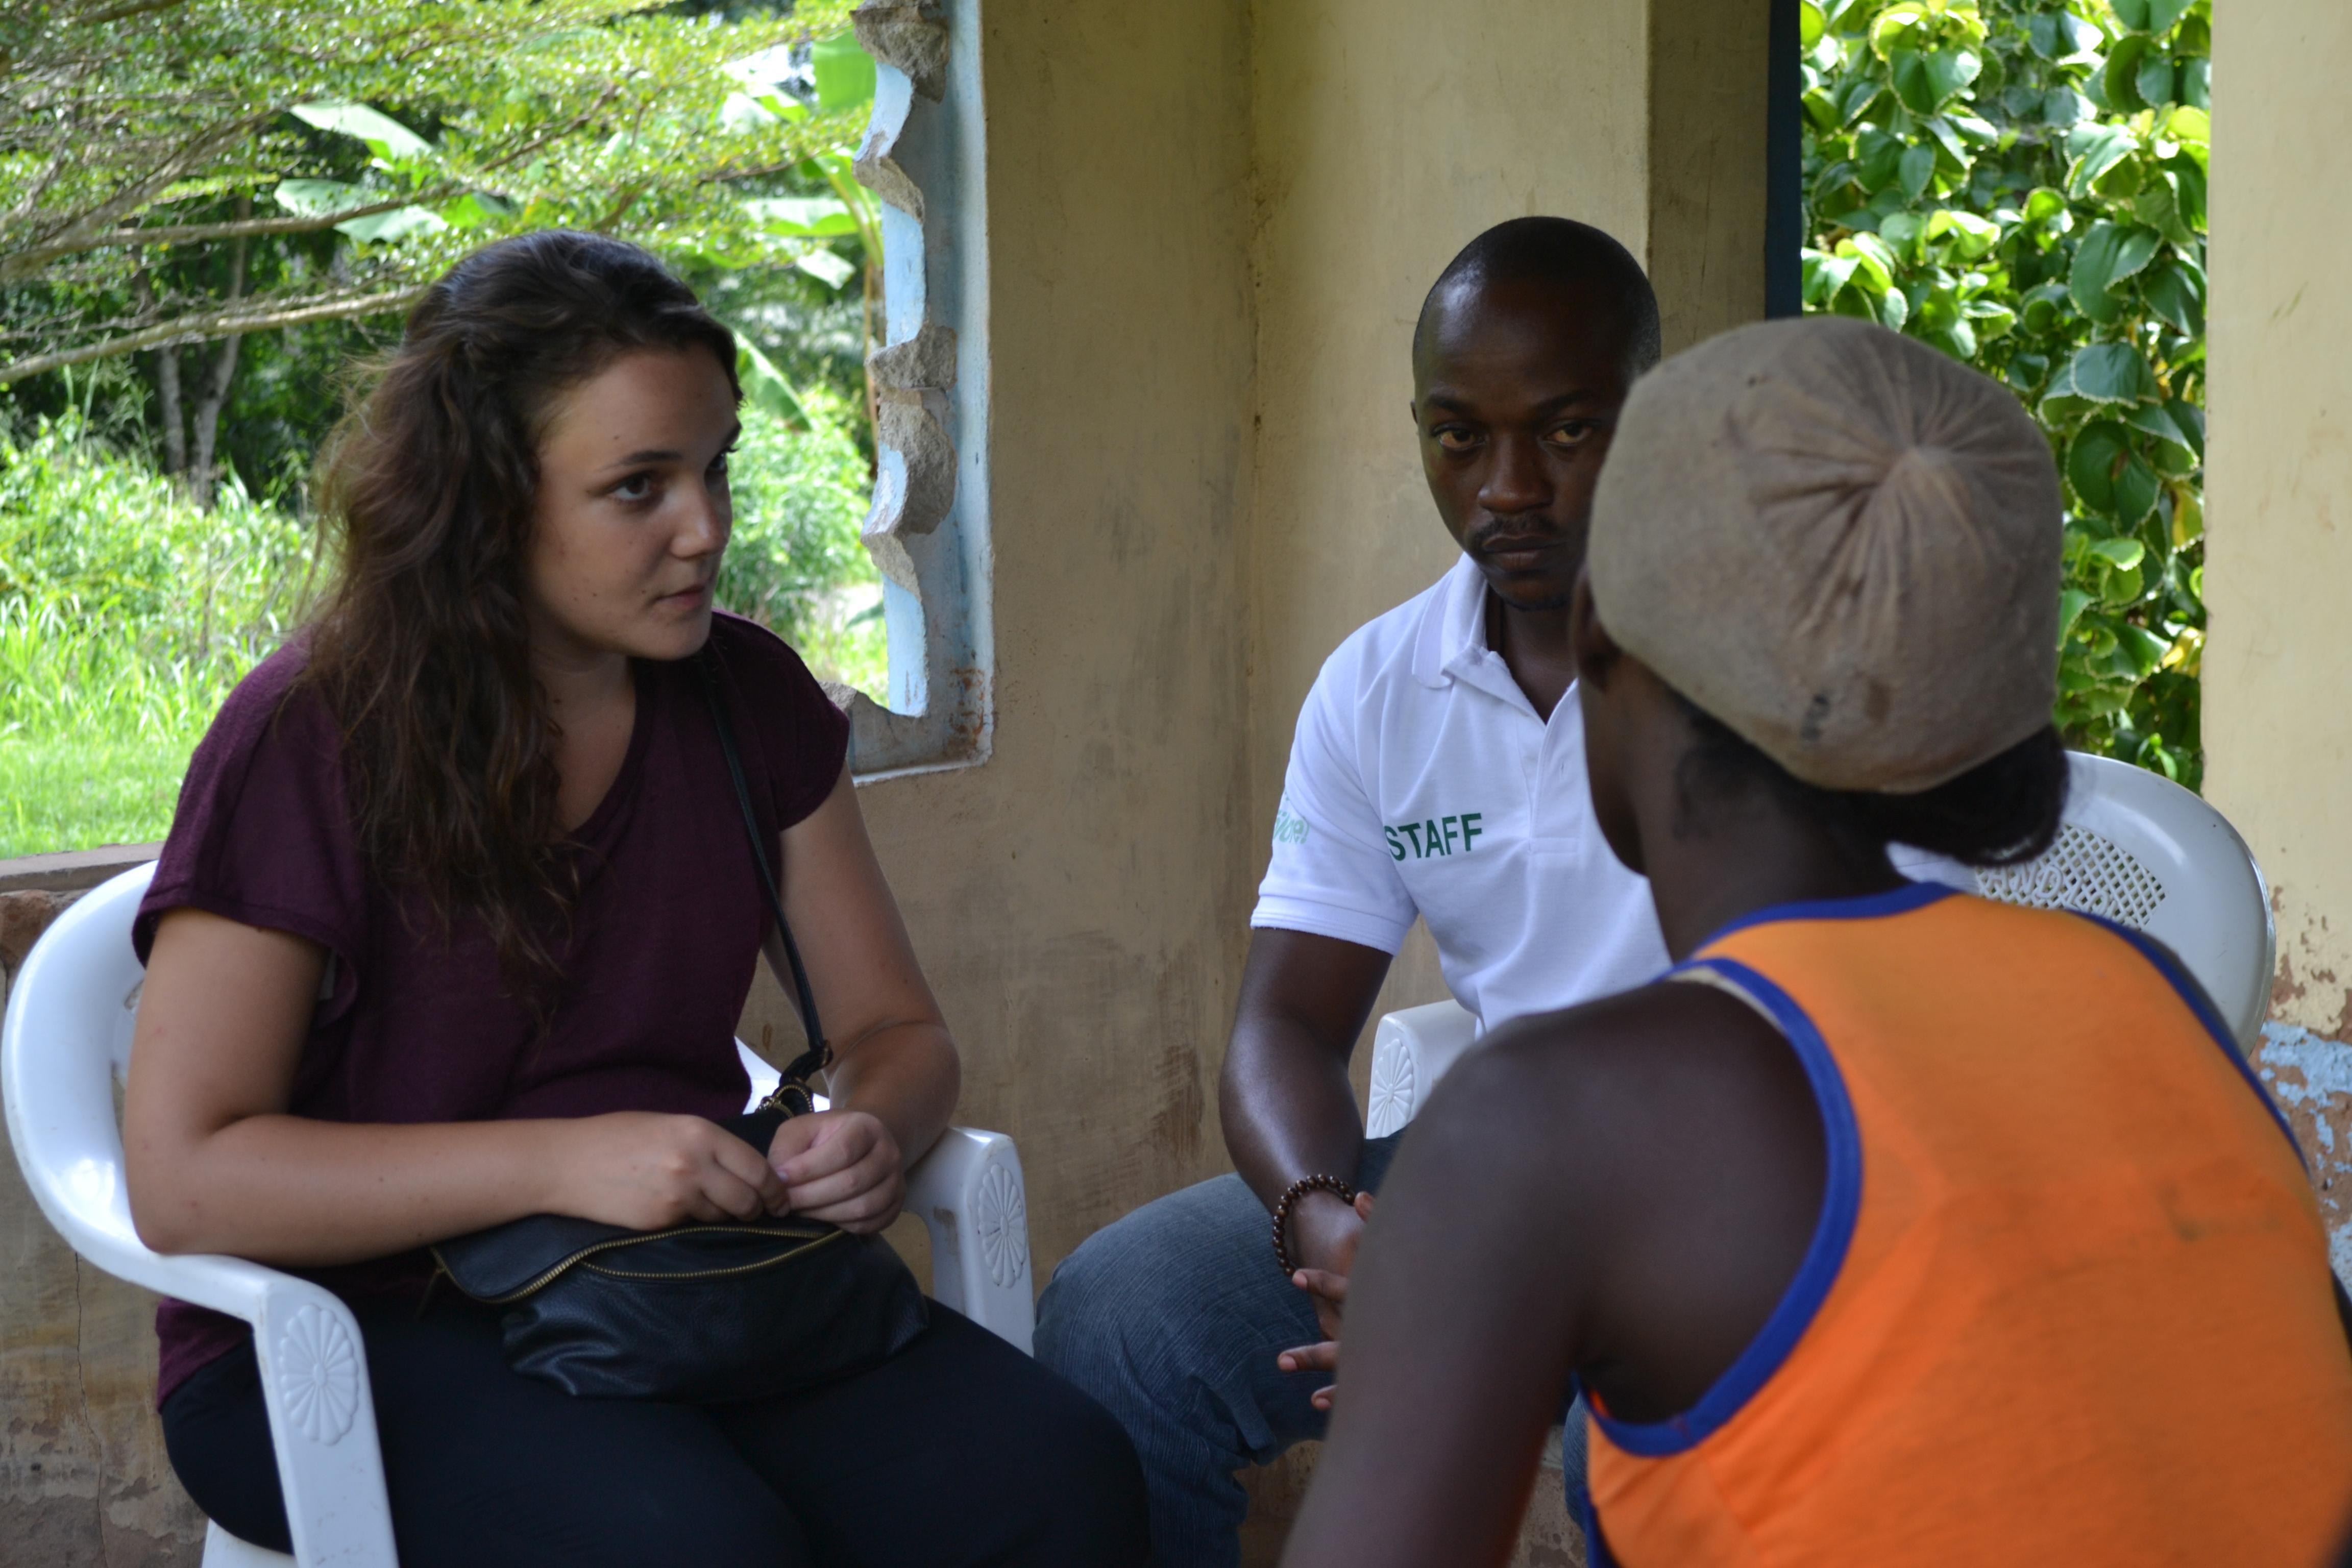 In Ghana, a speech therapy intern and local staff member chat to a patient at the placement location.